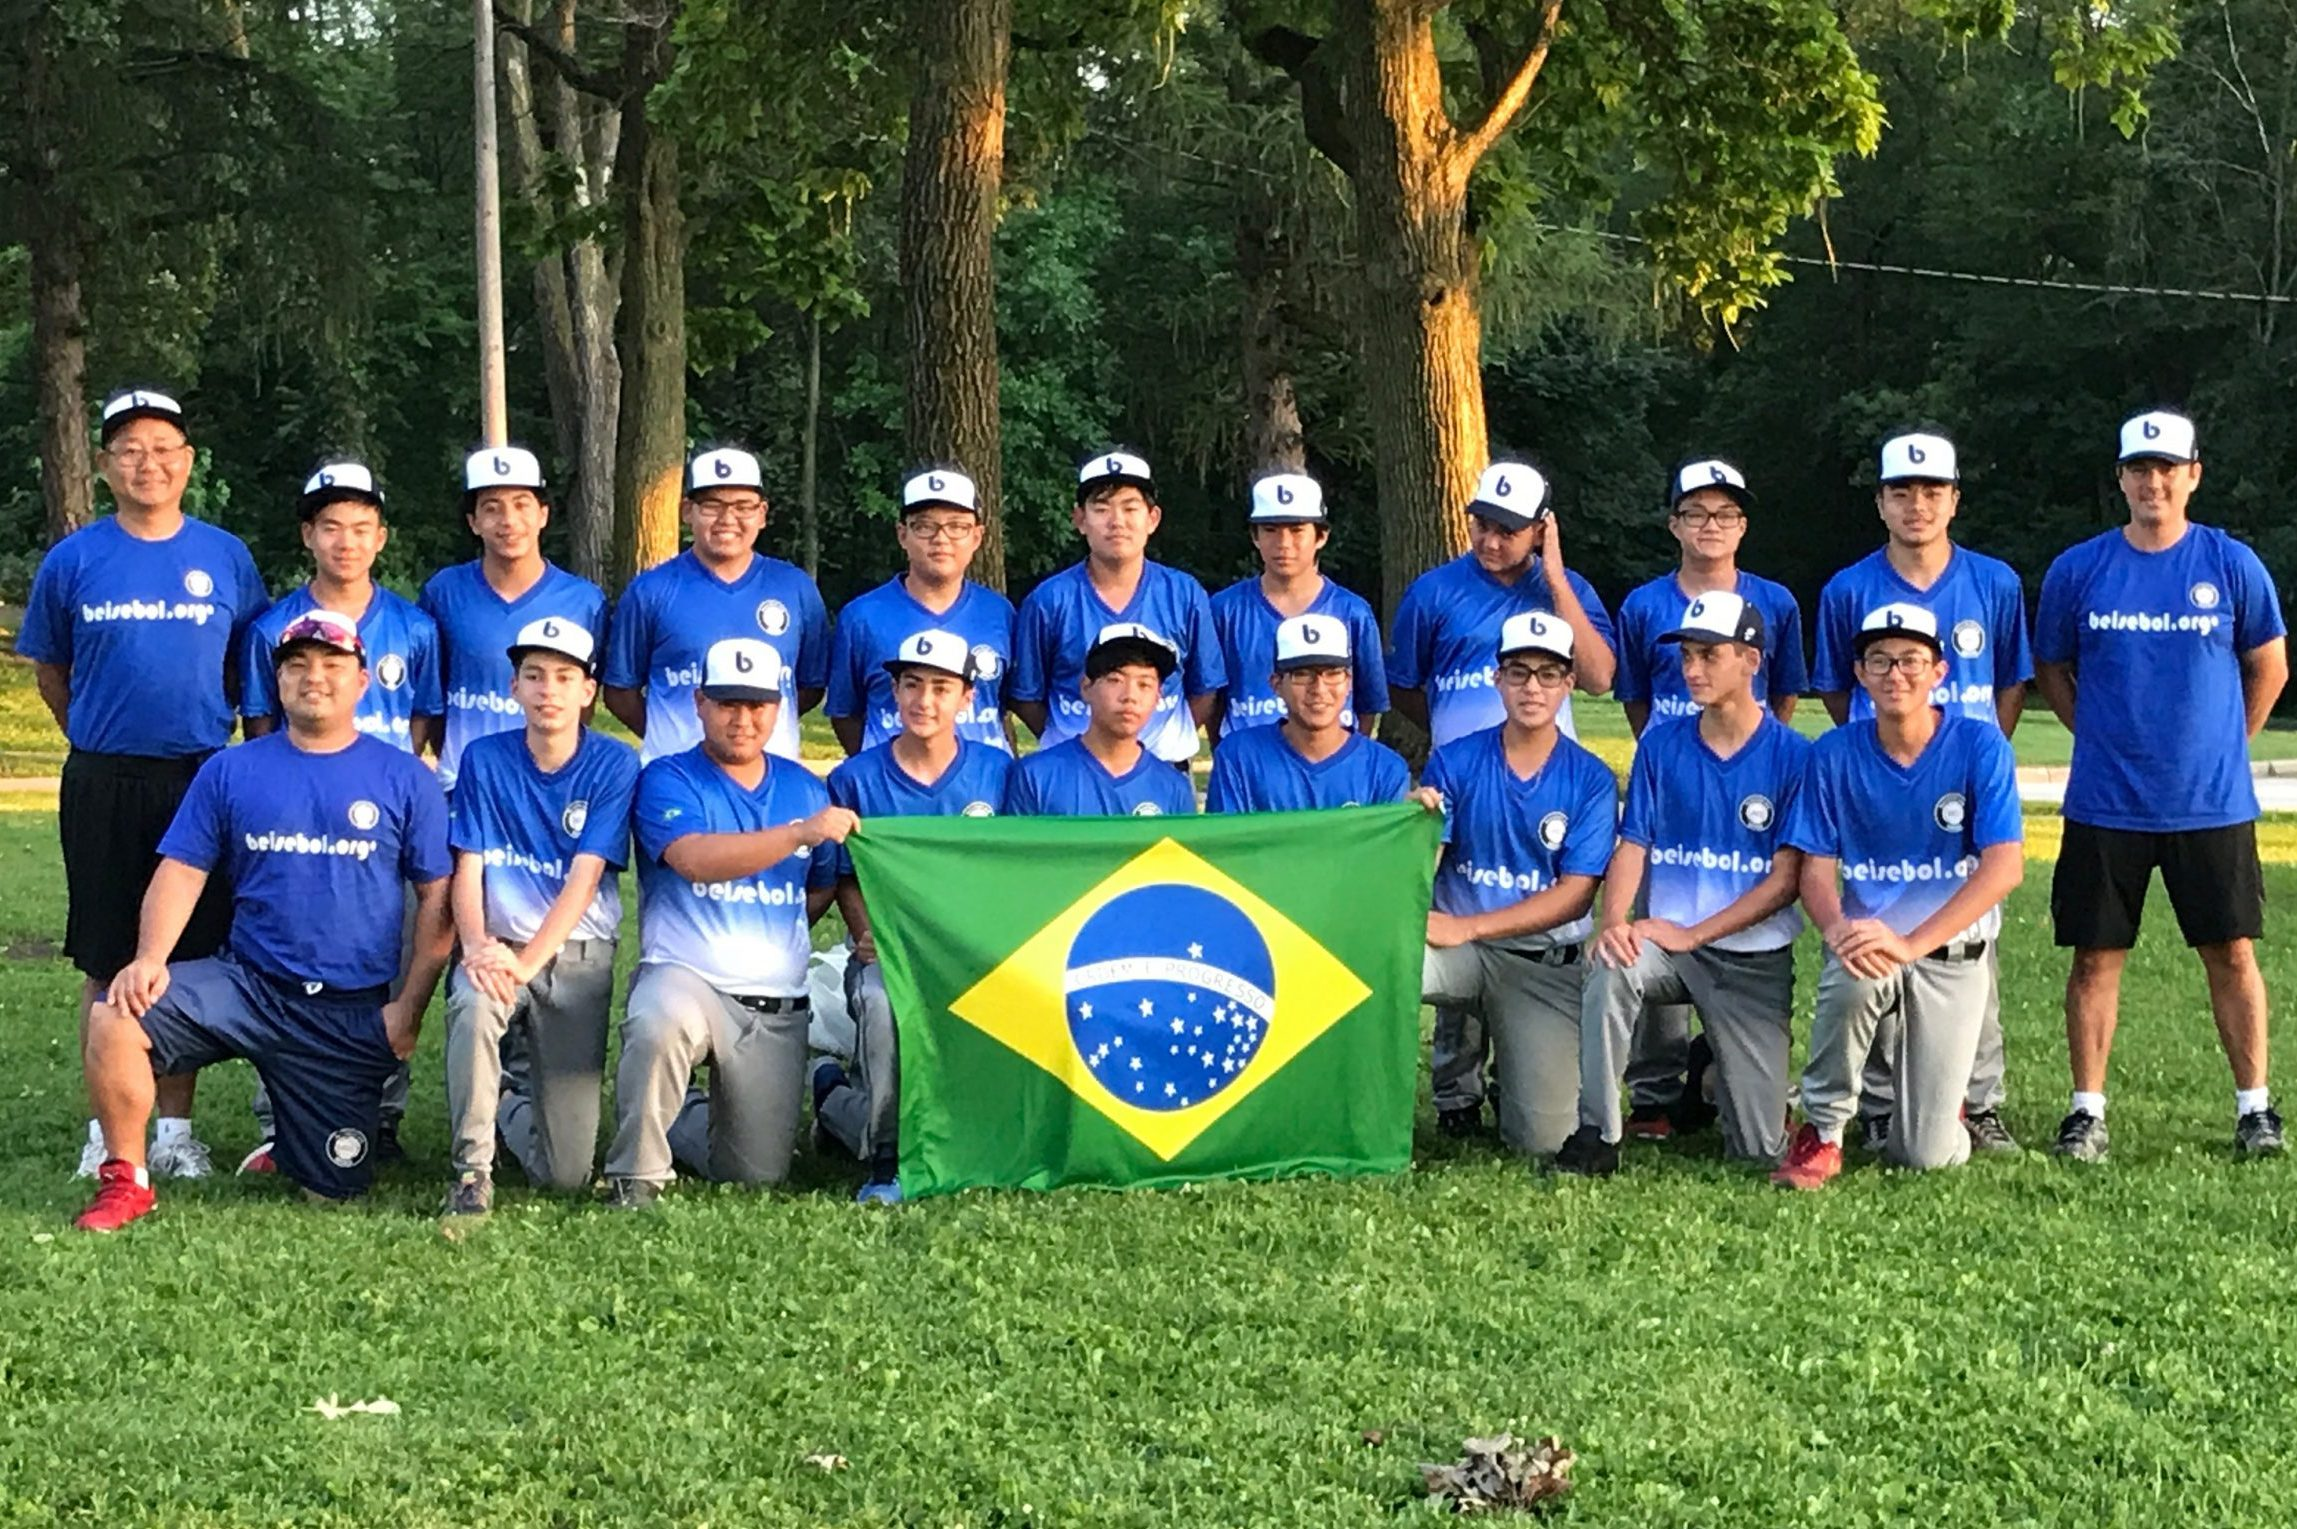 Beisbol.org from Brazil at the McHenry County Youth Sports Association Tournament